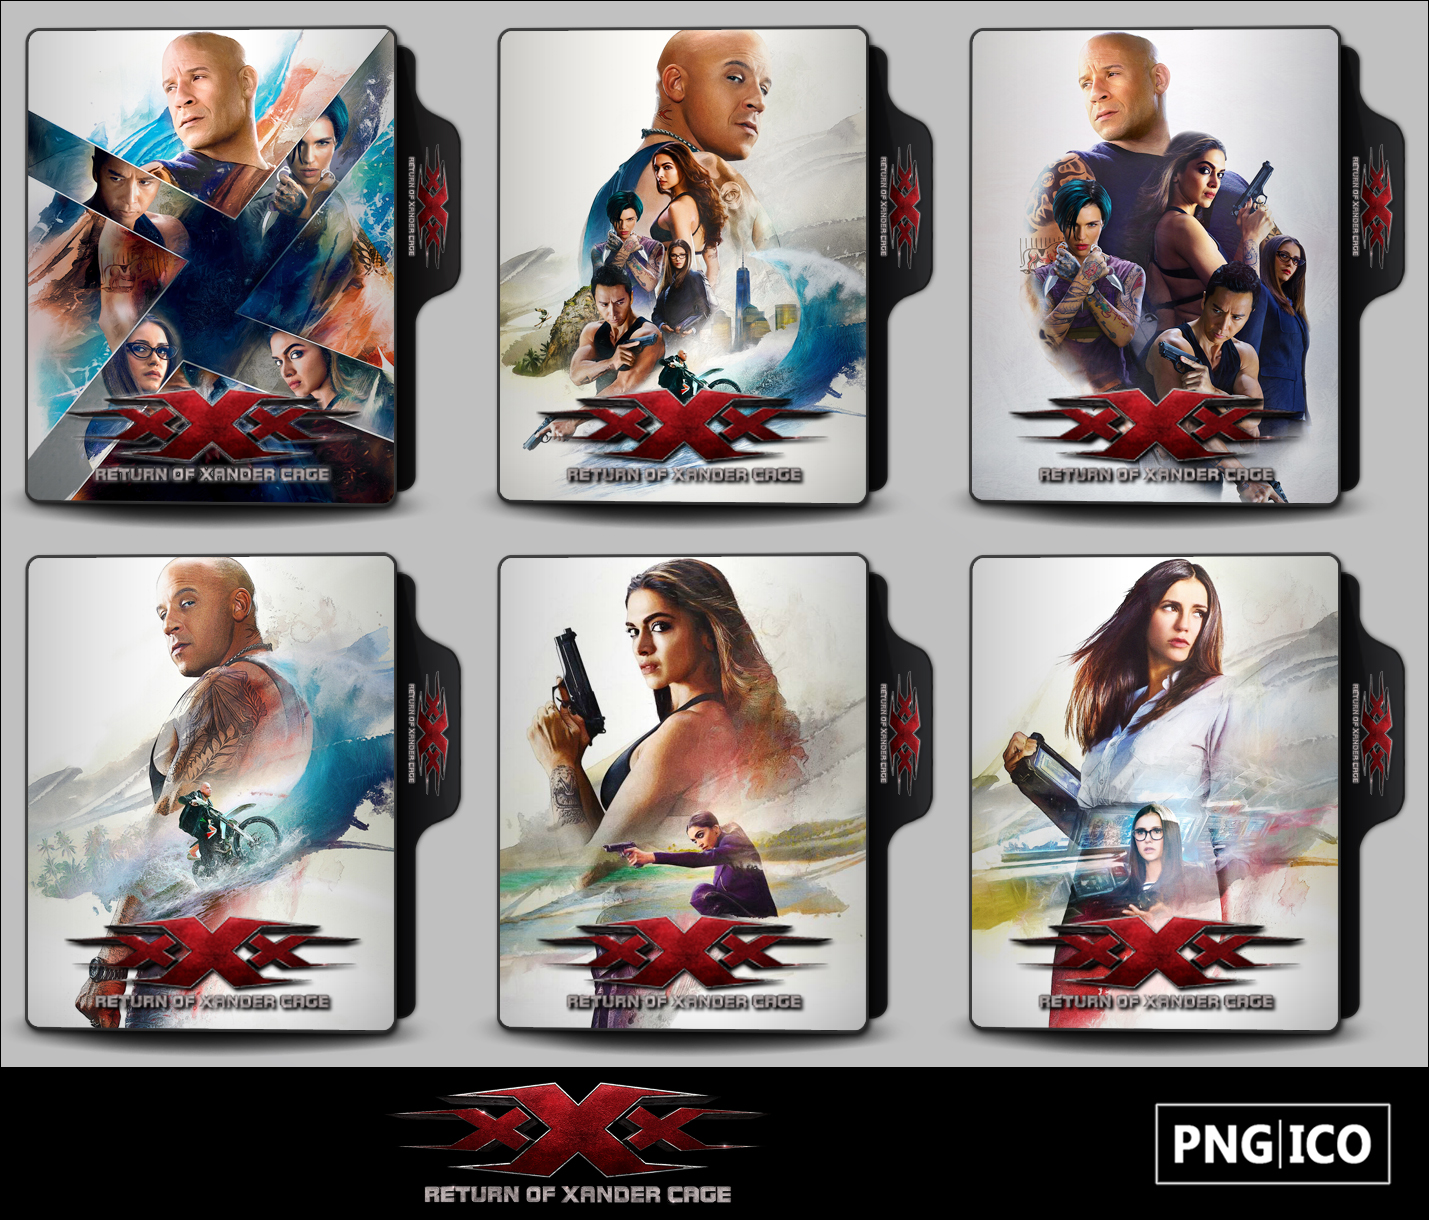 Xxx Return Of Xander Cage 2017 Folder Icons By Onlystylematters On Deviantart